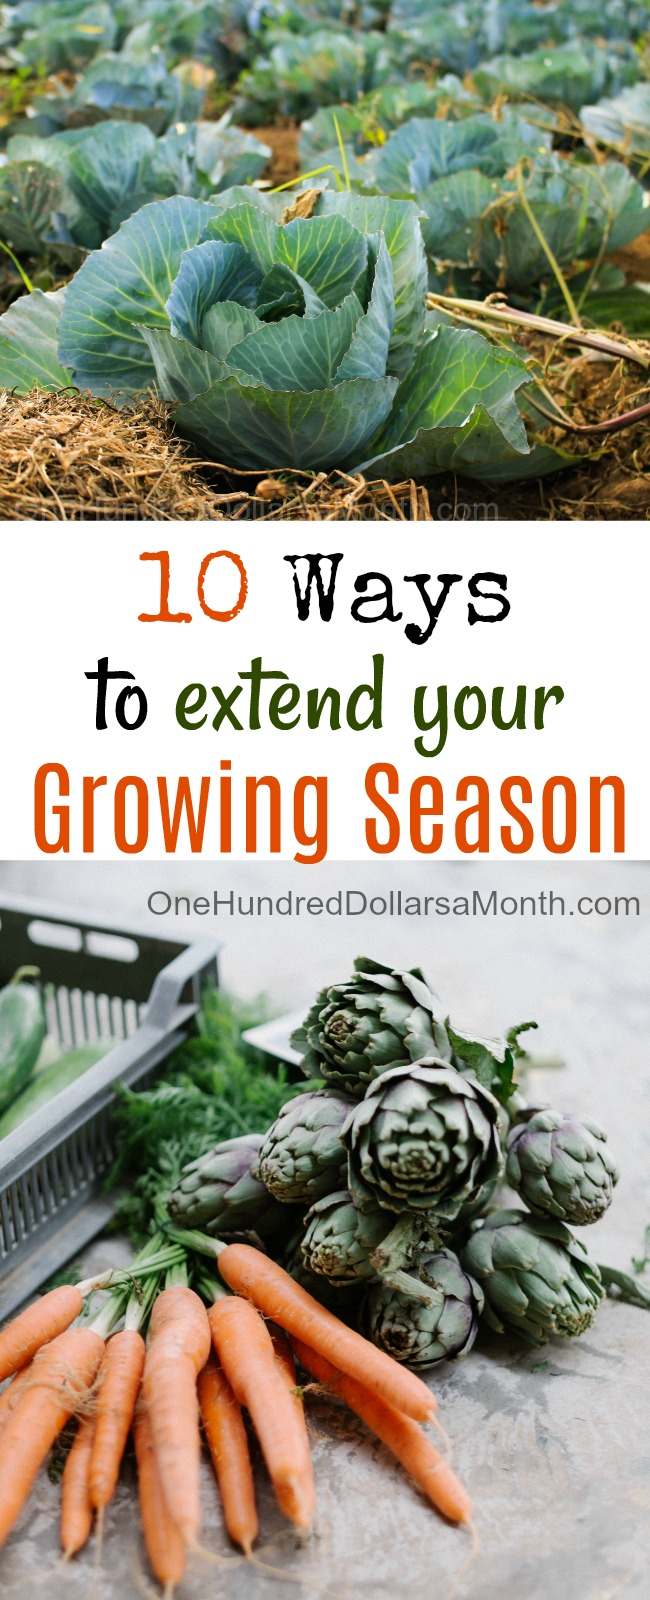 10 Ways to Extend Your Growing Season